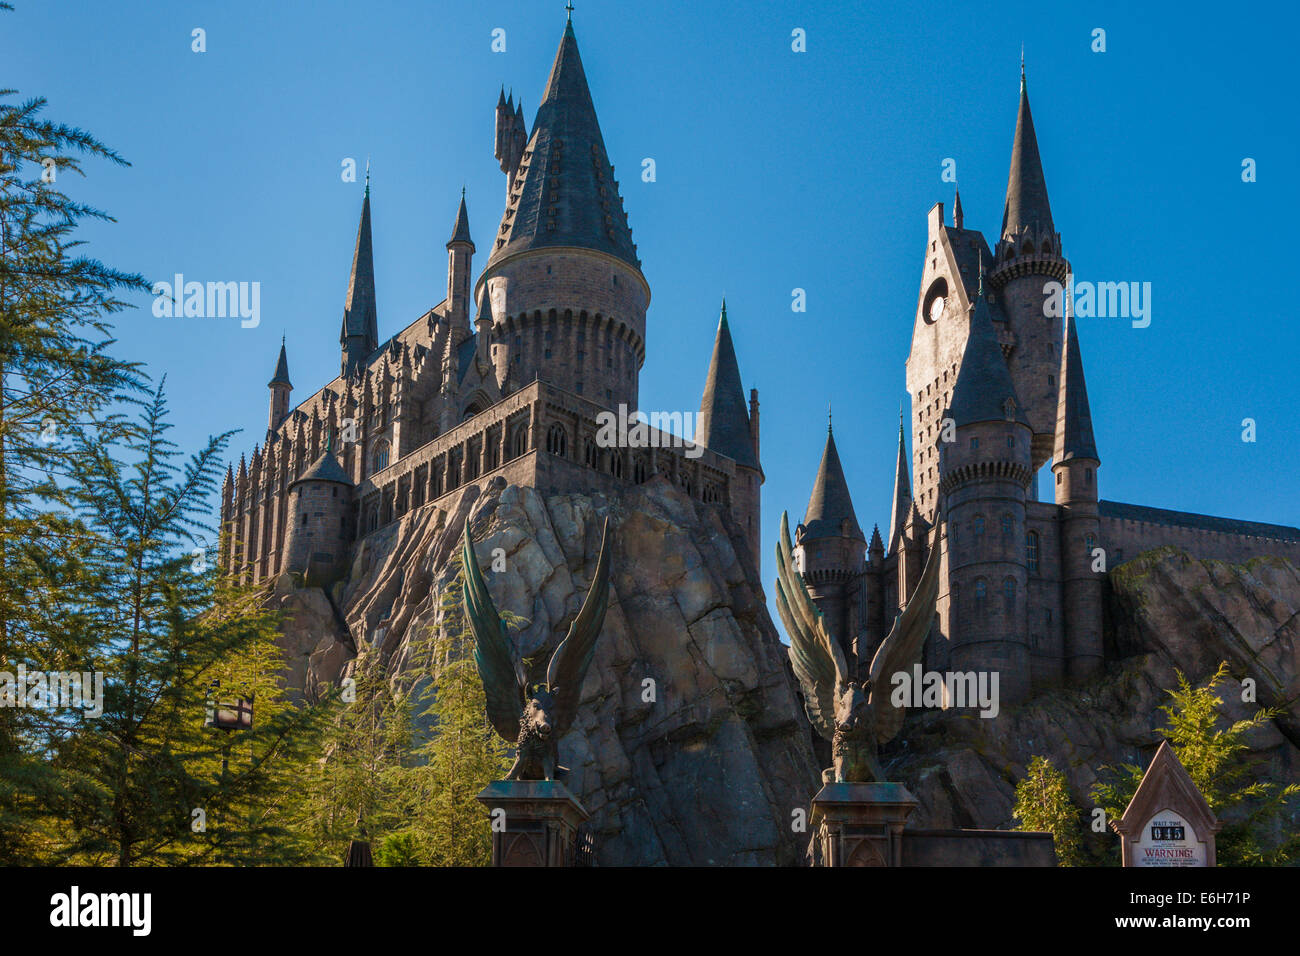 Harry Potter Hogwarts Hogwarts Castle Stock Photos And Hogwarts Castle Stock